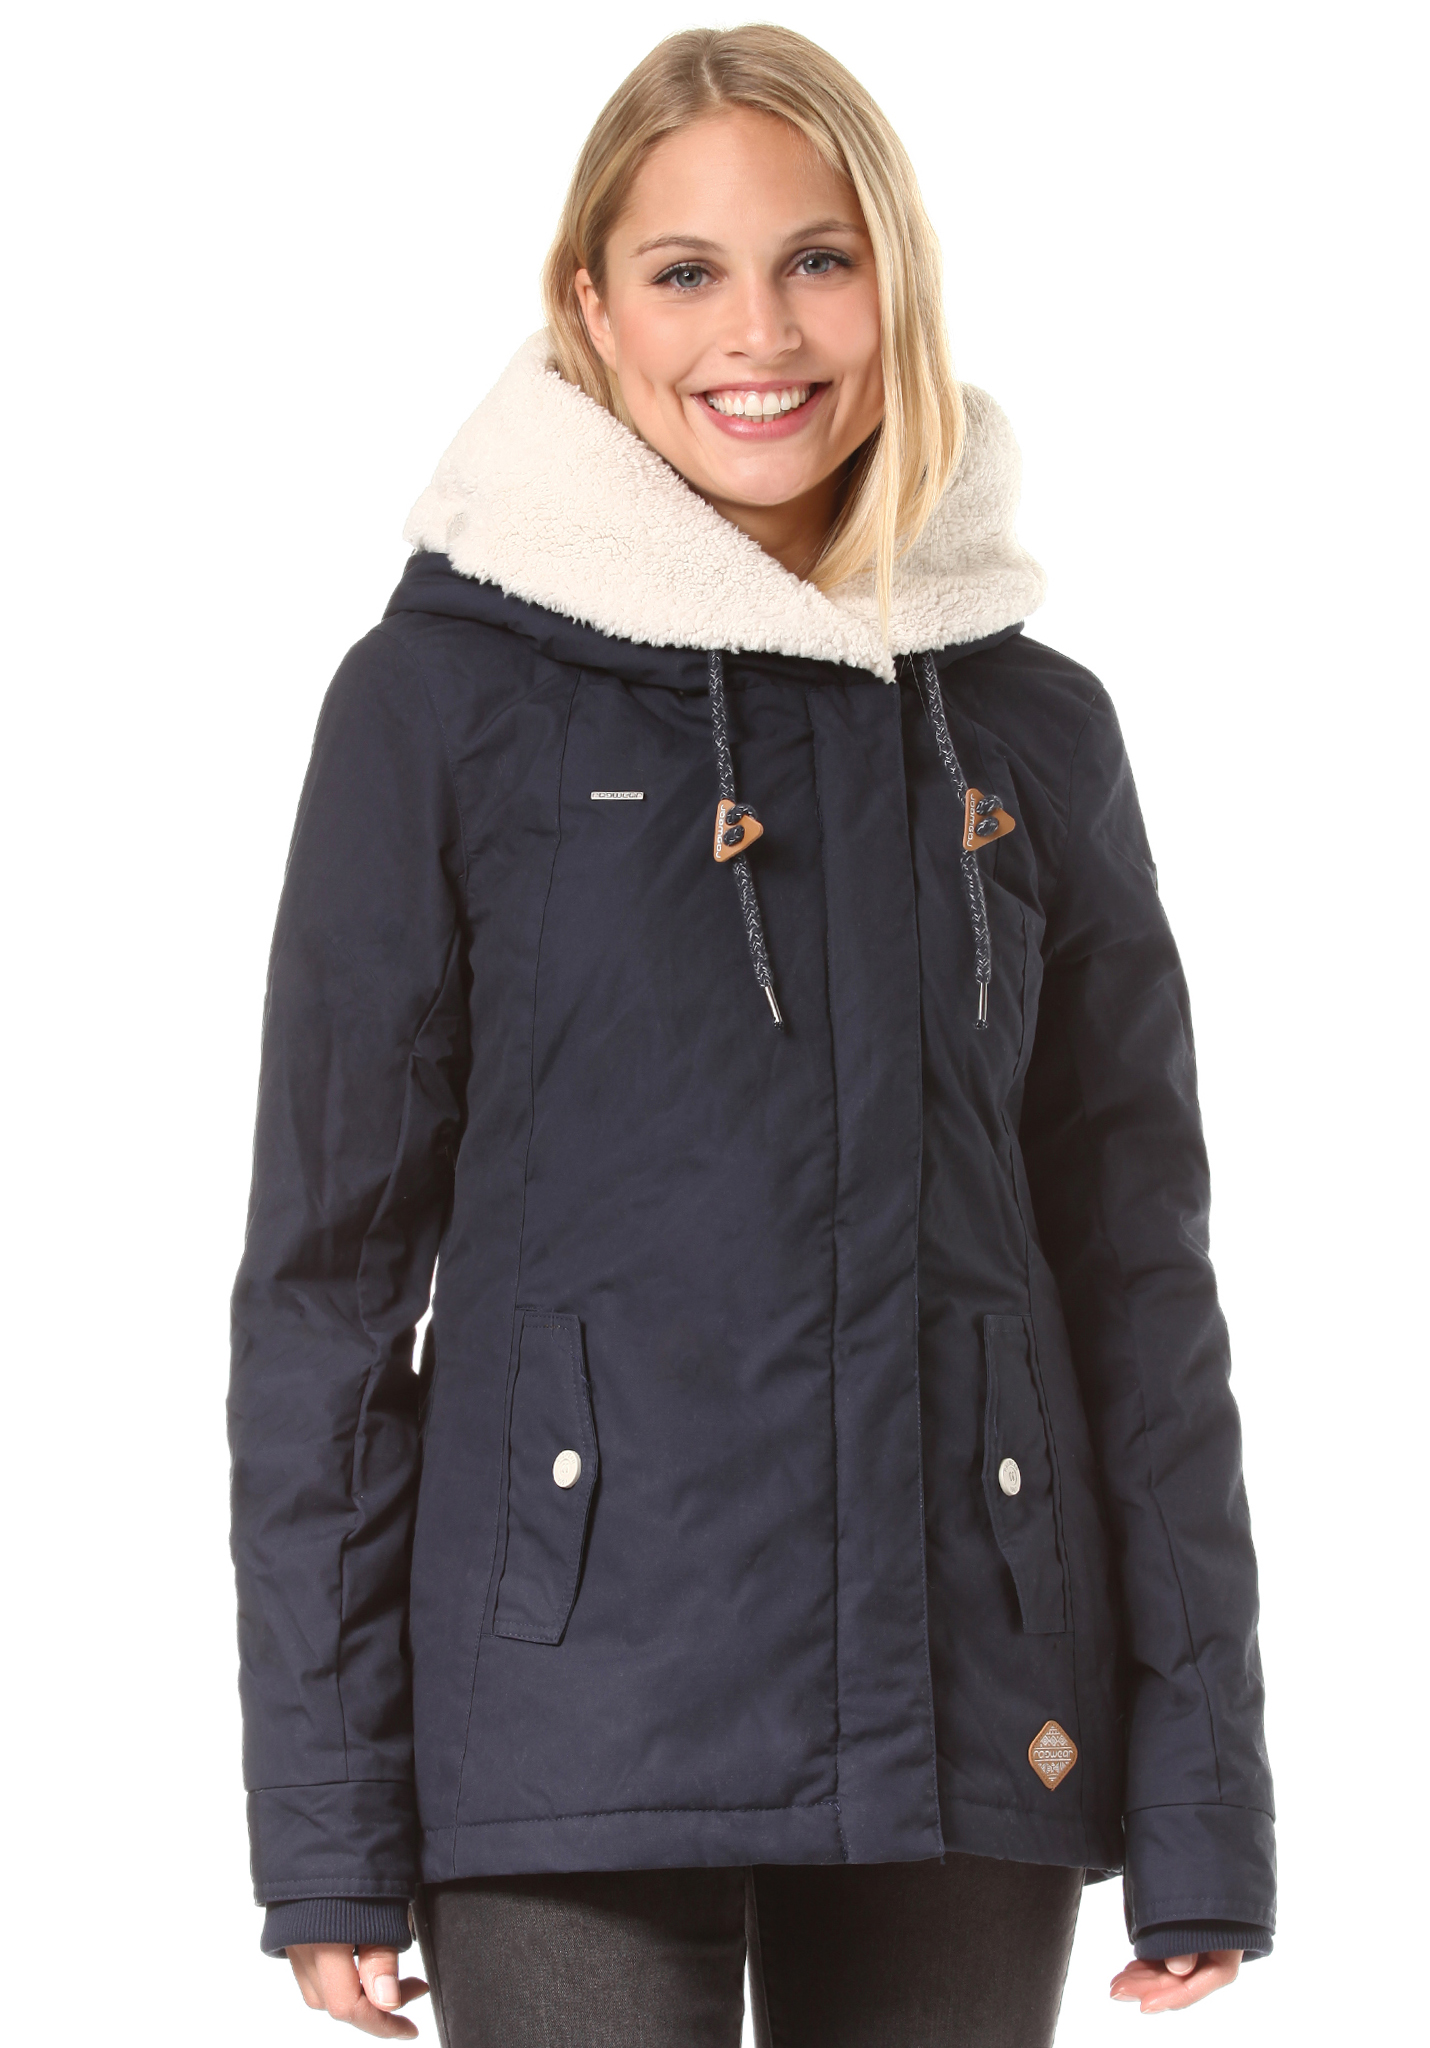 Ragwear Women's Jackets – casual, high quality and absolutely hip